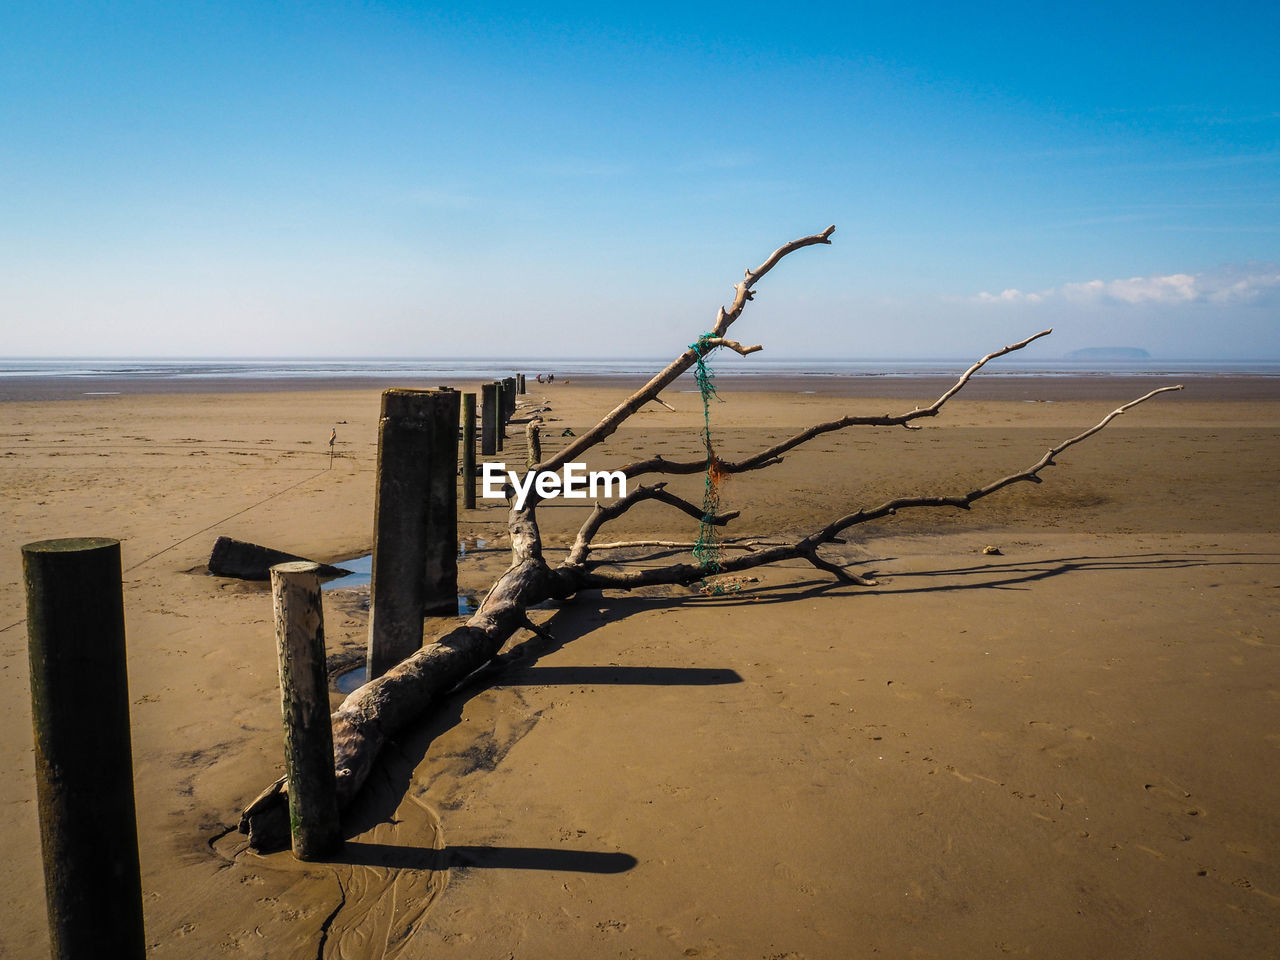 sand, nature, sea, beach, no people, tranquility, water, scenics, outdoors, day, sky, tranquil scene, dead plant, horizon over water, beauty in nature, dead tree